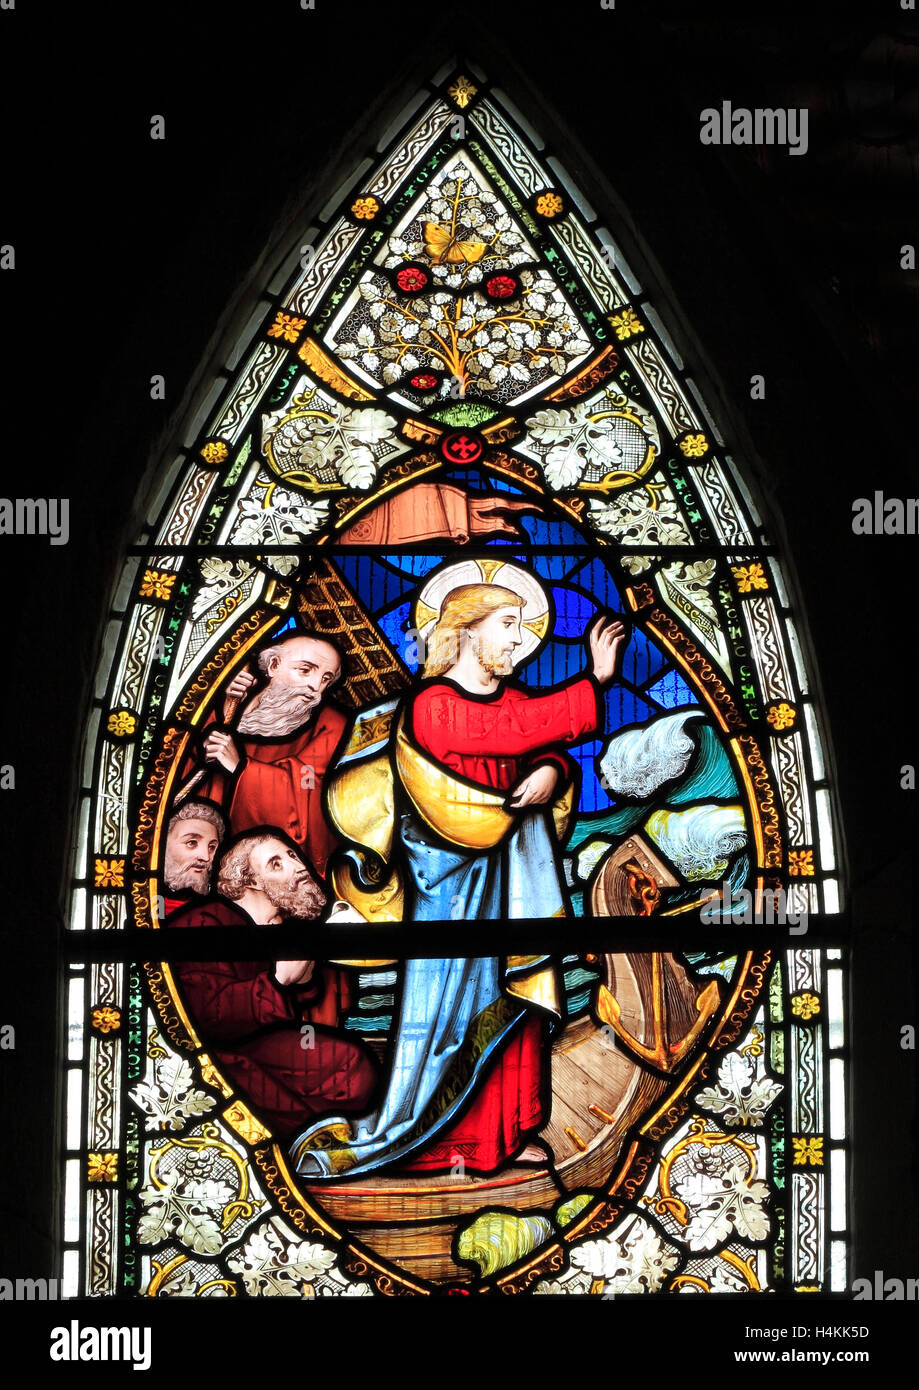 Jesus stilling the Waves, by Ward  & Hughes, 1869,  stained glass window, Stanhoe, Norfolk, scenes from the - Stock Image